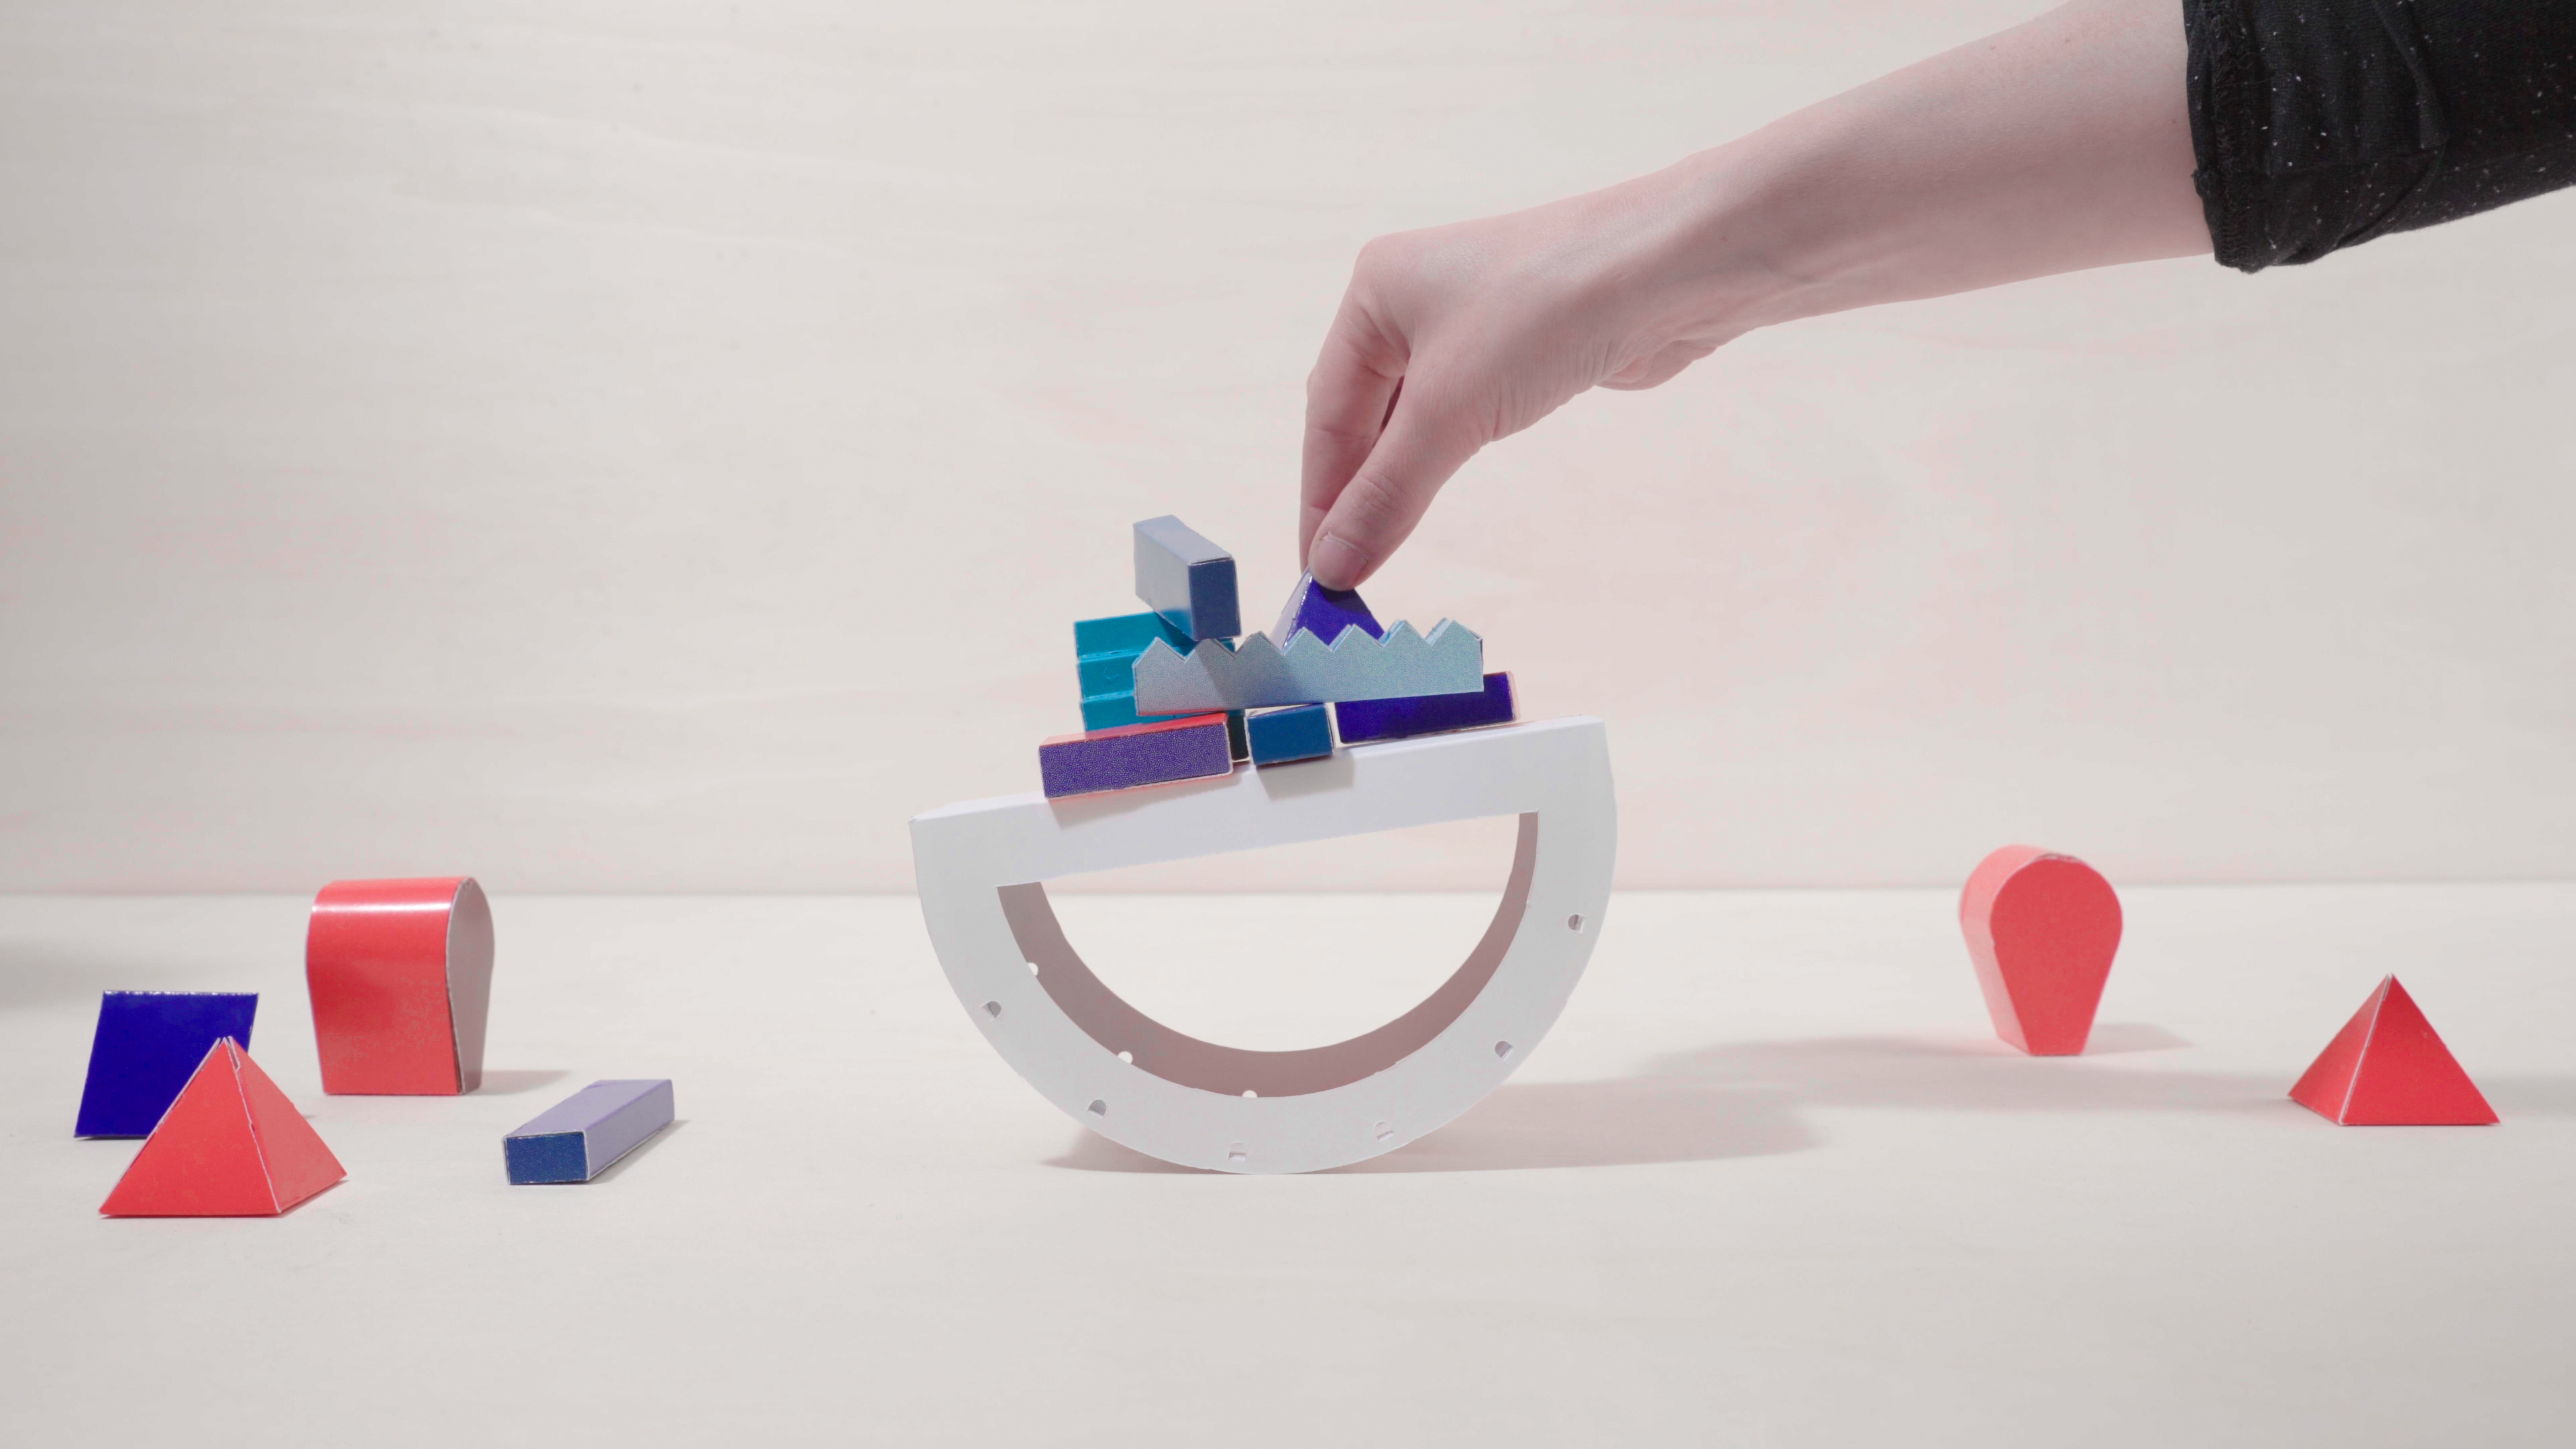 Papier Machine Combines Paper Circuits and Mechanics in Delightfully Pastel Videos